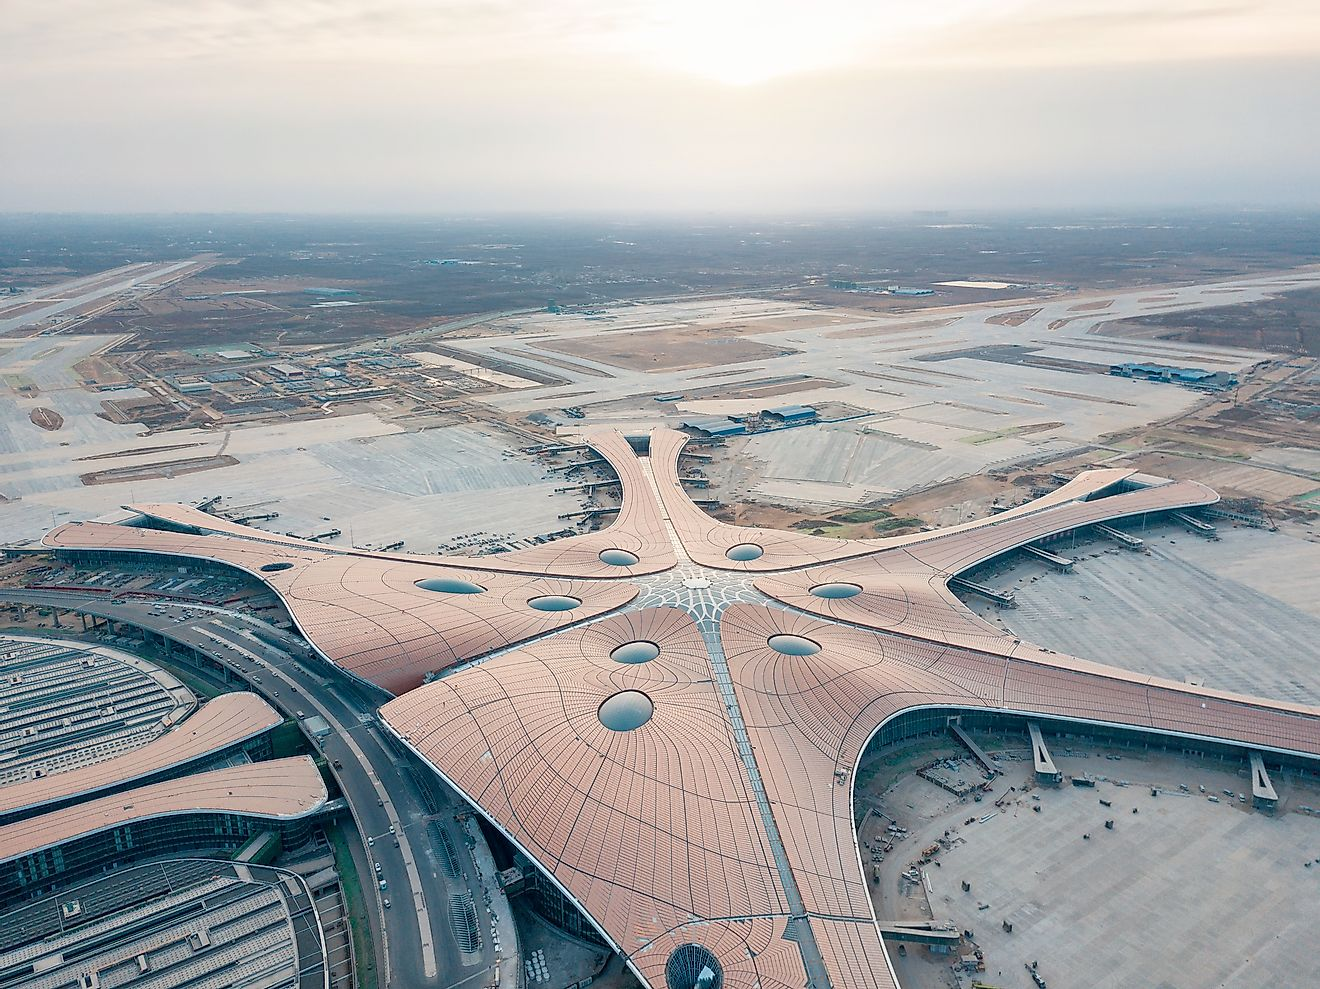 China's Beijing Daxing International Airport is the newest airport to make it to the list of the world's 10 biggest airports. Editorial credit: lazy dragon / Shutterstock.com